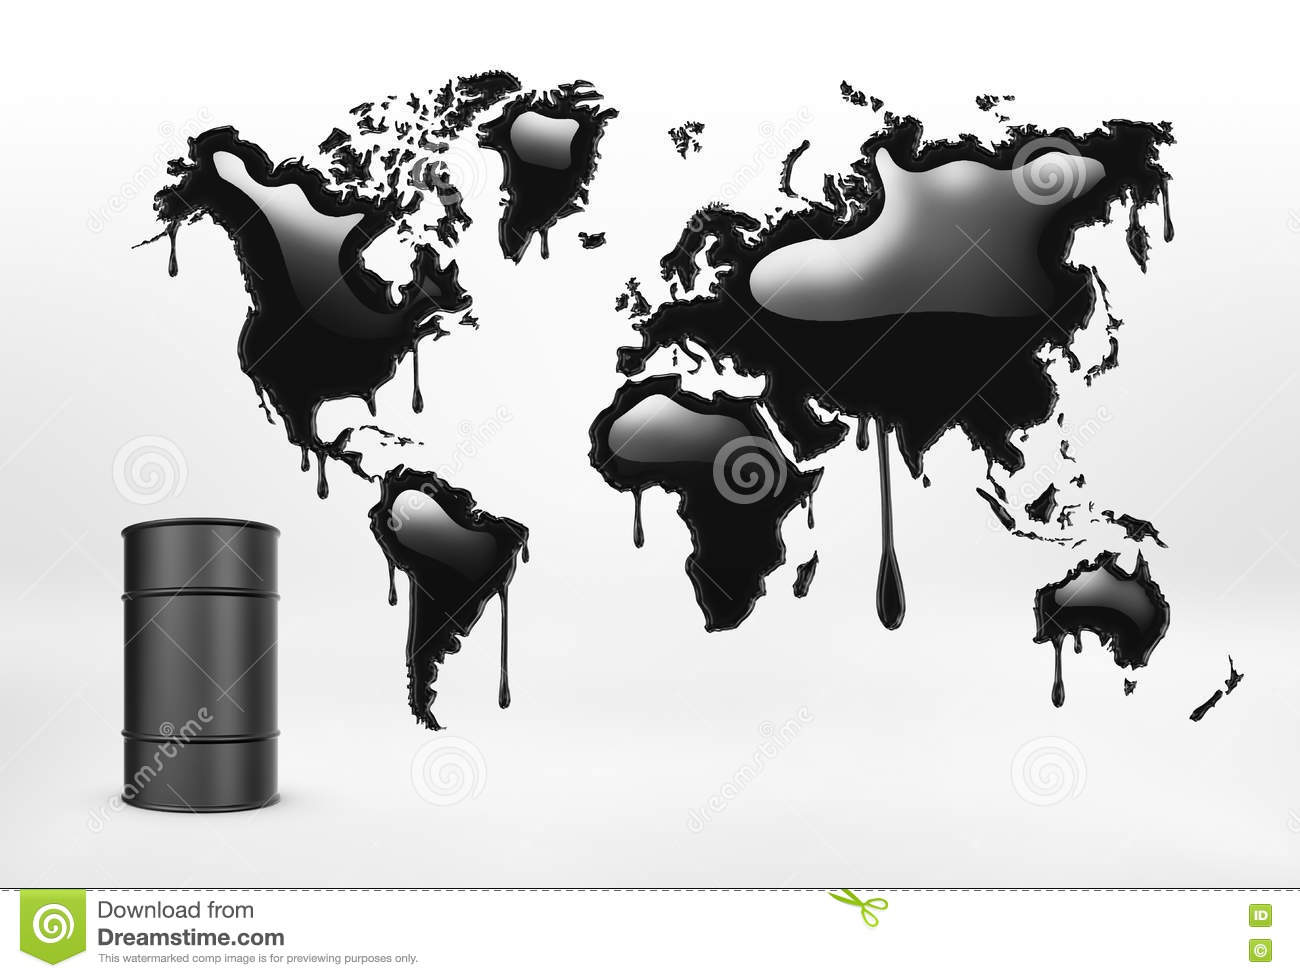 Rendering of geographical mapcolored in black and oil barrel on the white background